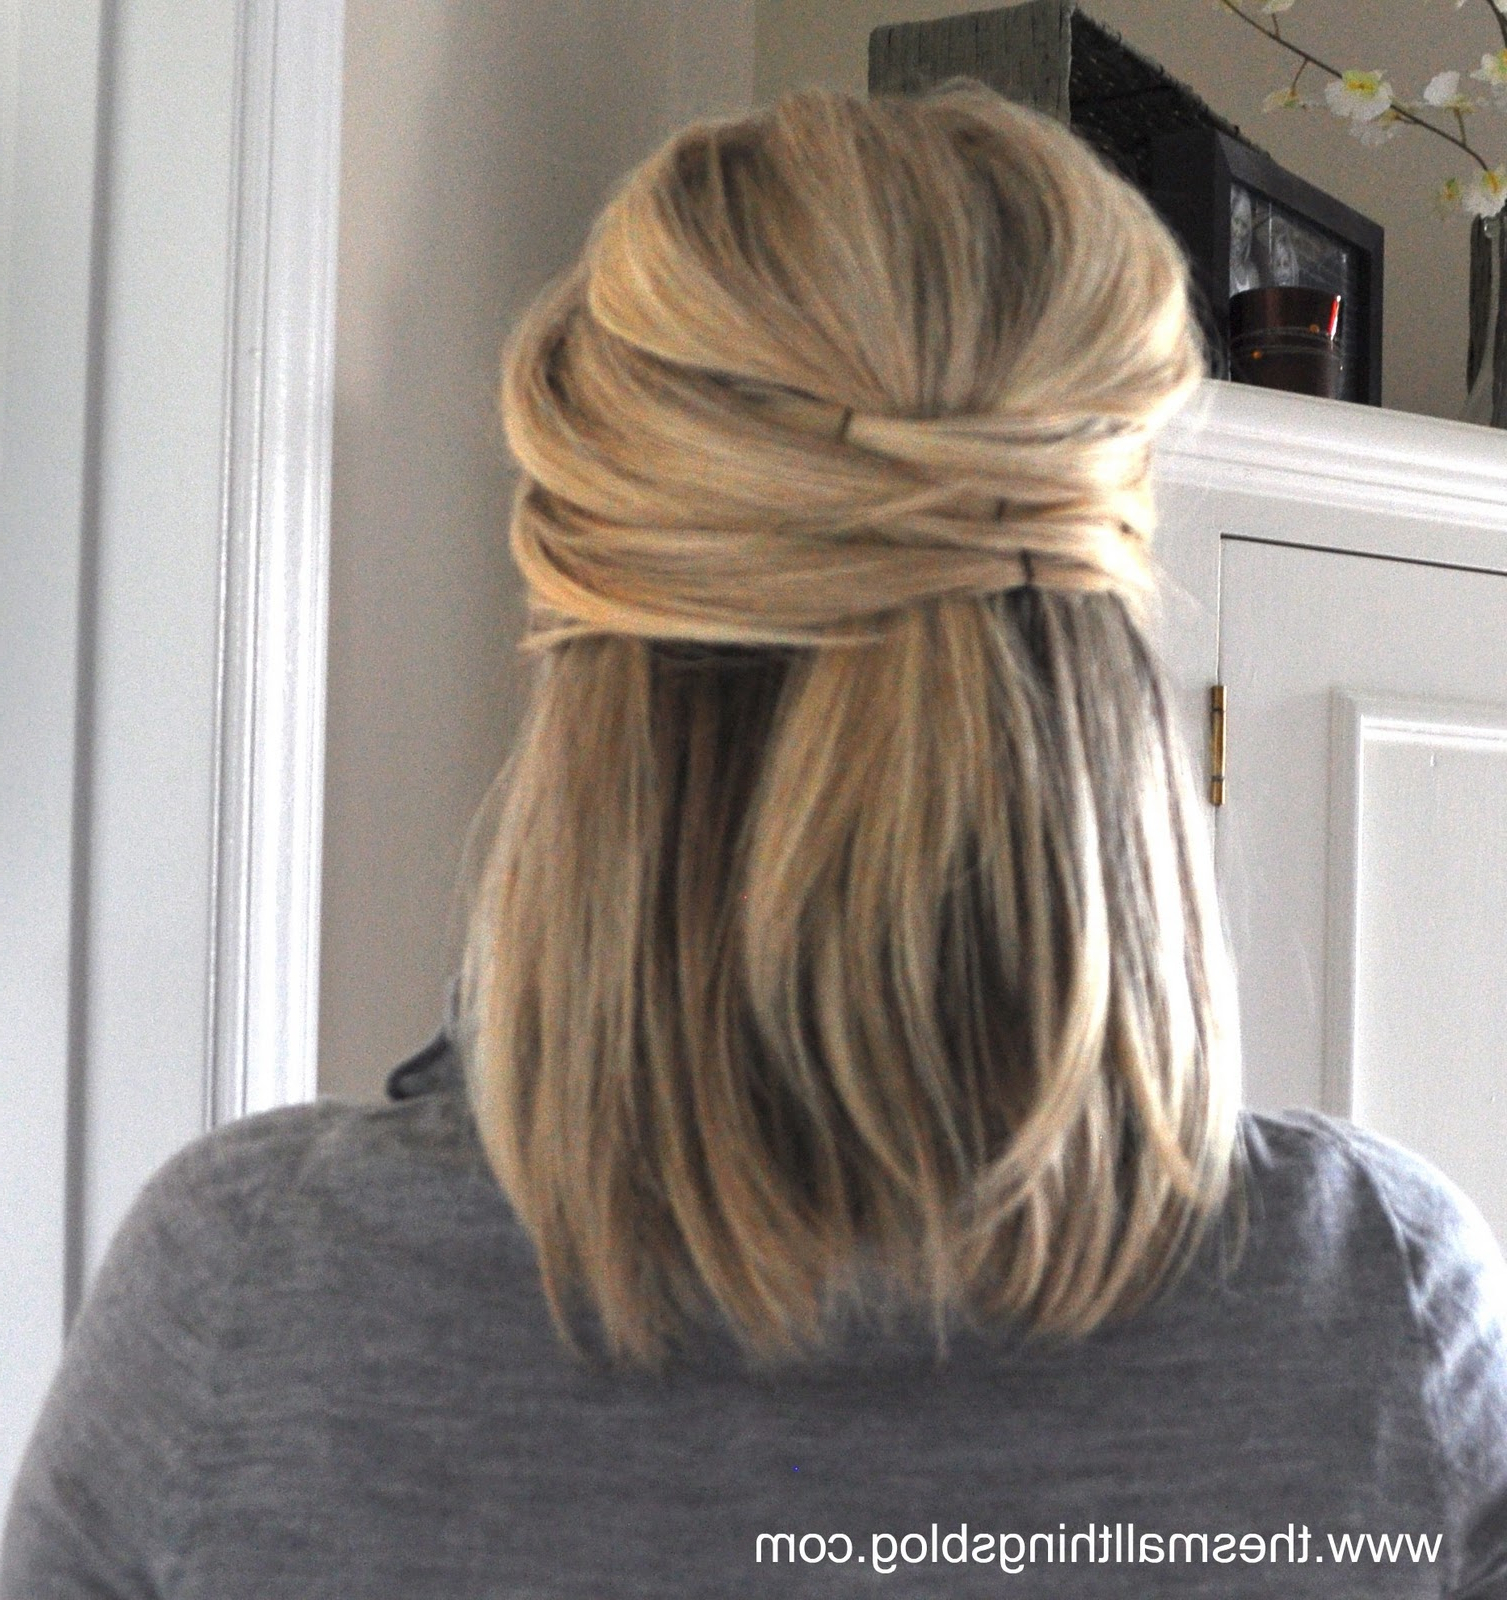 Elegant Half Up – The Small Things Blog Pertaining To Latest Crisscrossed Half Up Wedding Hairstyles (Gallery 6 of 20)